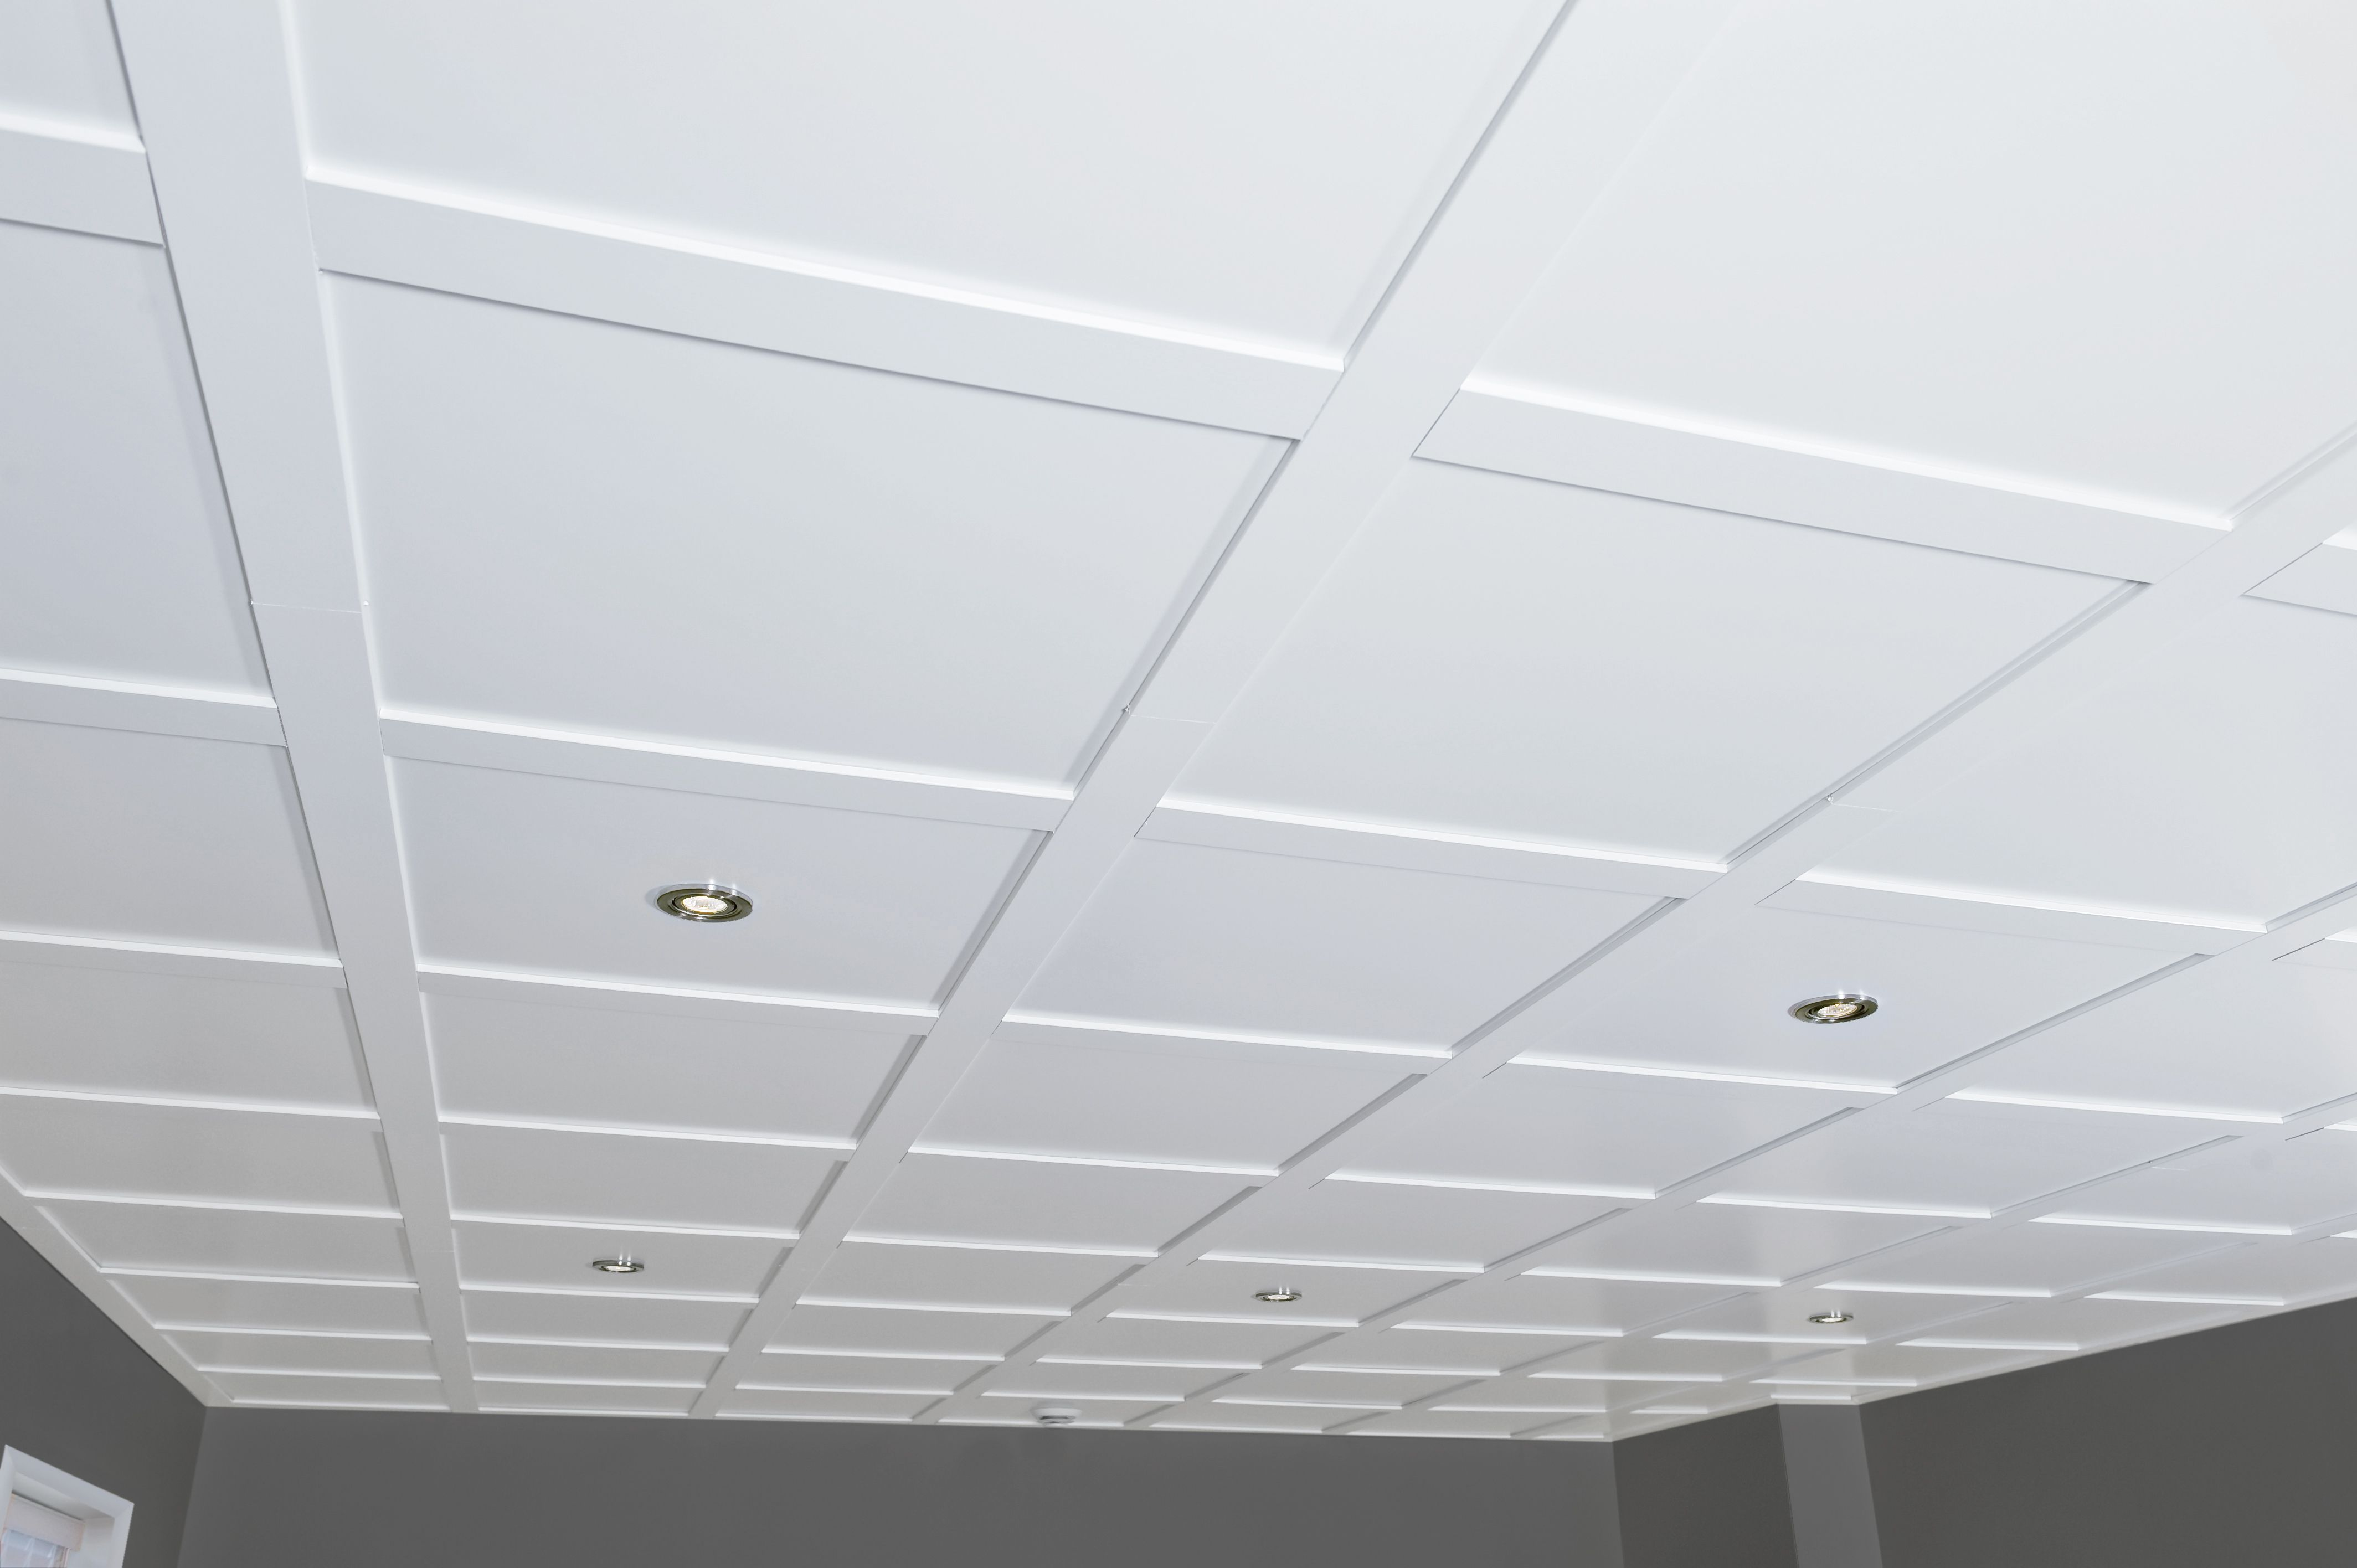 Plafond Embassy Blanc Plafond White Embassy Suspended Ceiling Ceiling Basement Ceiling Basement Renovations Suspended Ceiling Tiles